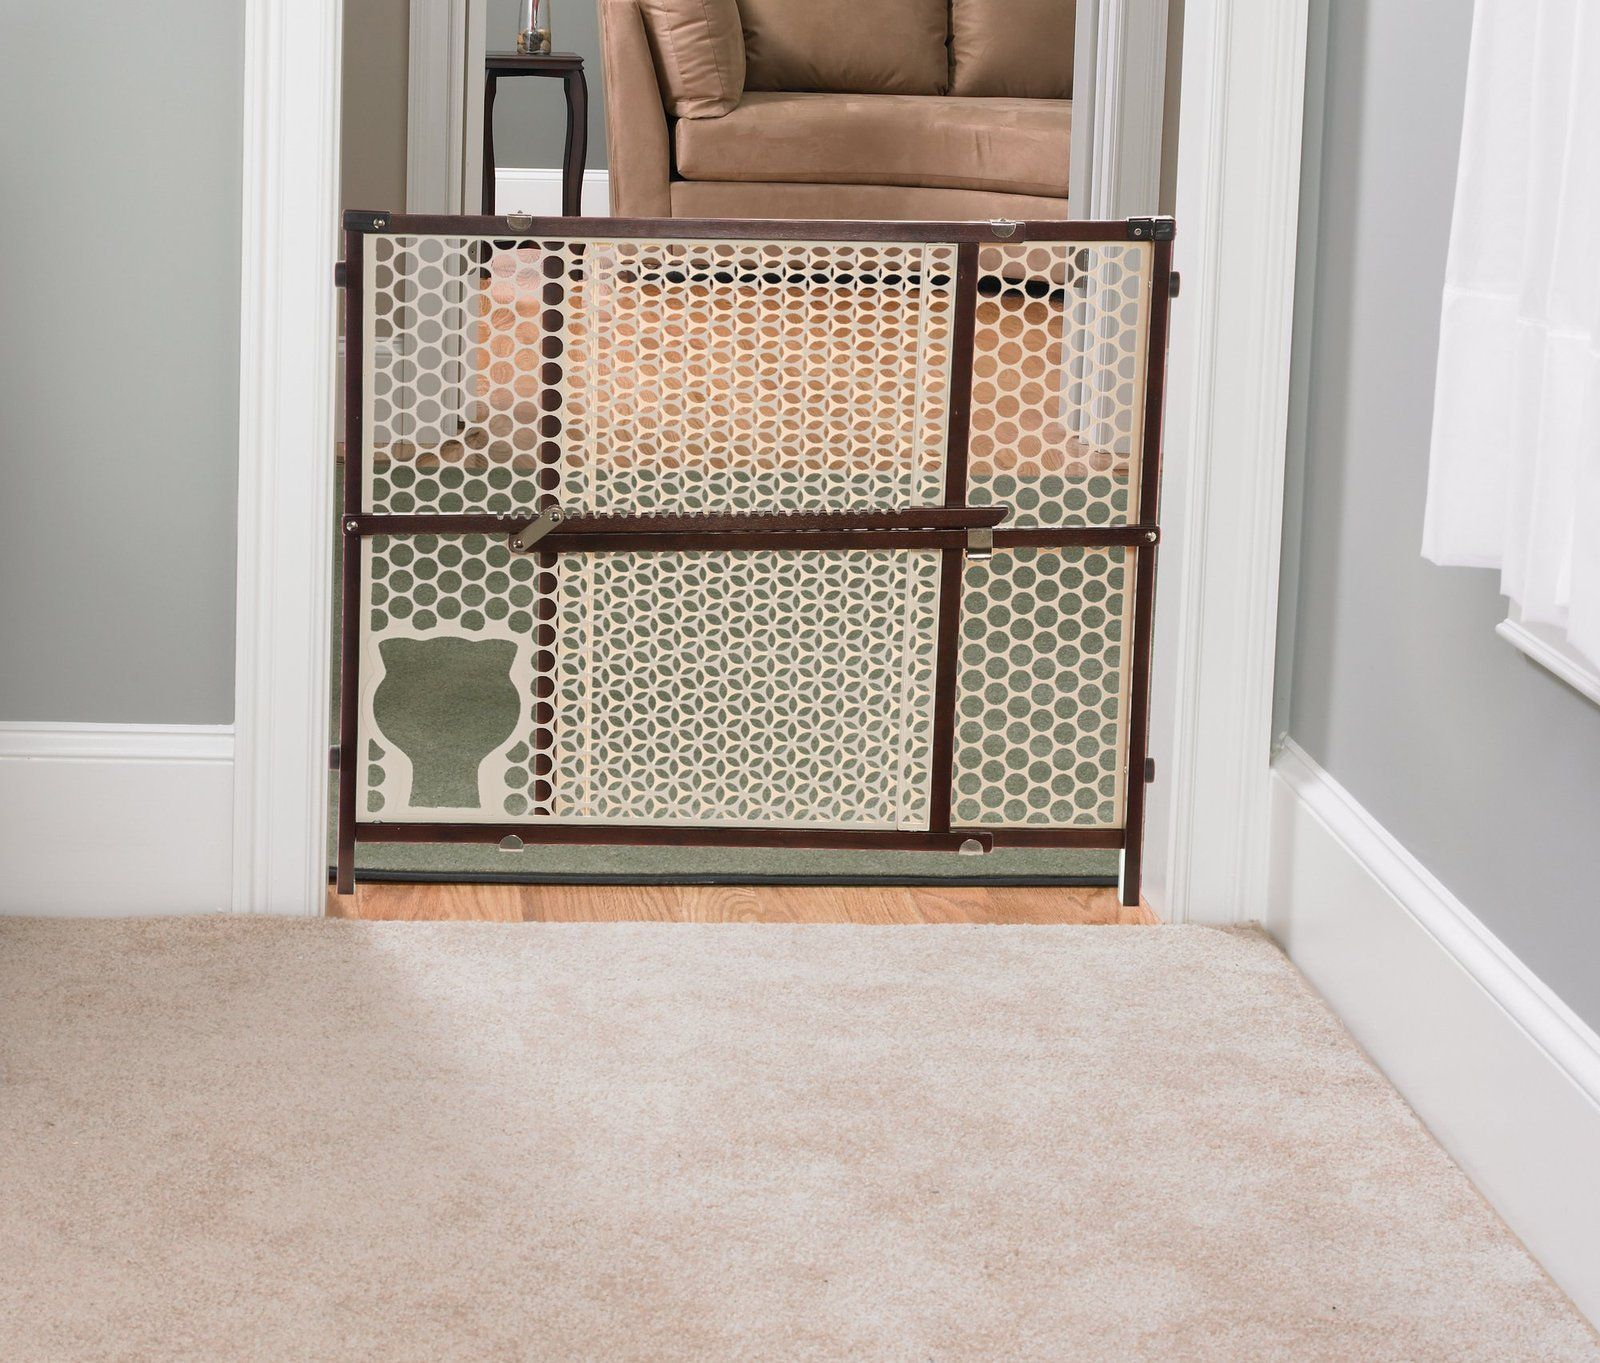 The Safety 1st BabynPet Gate allows small pets to pass